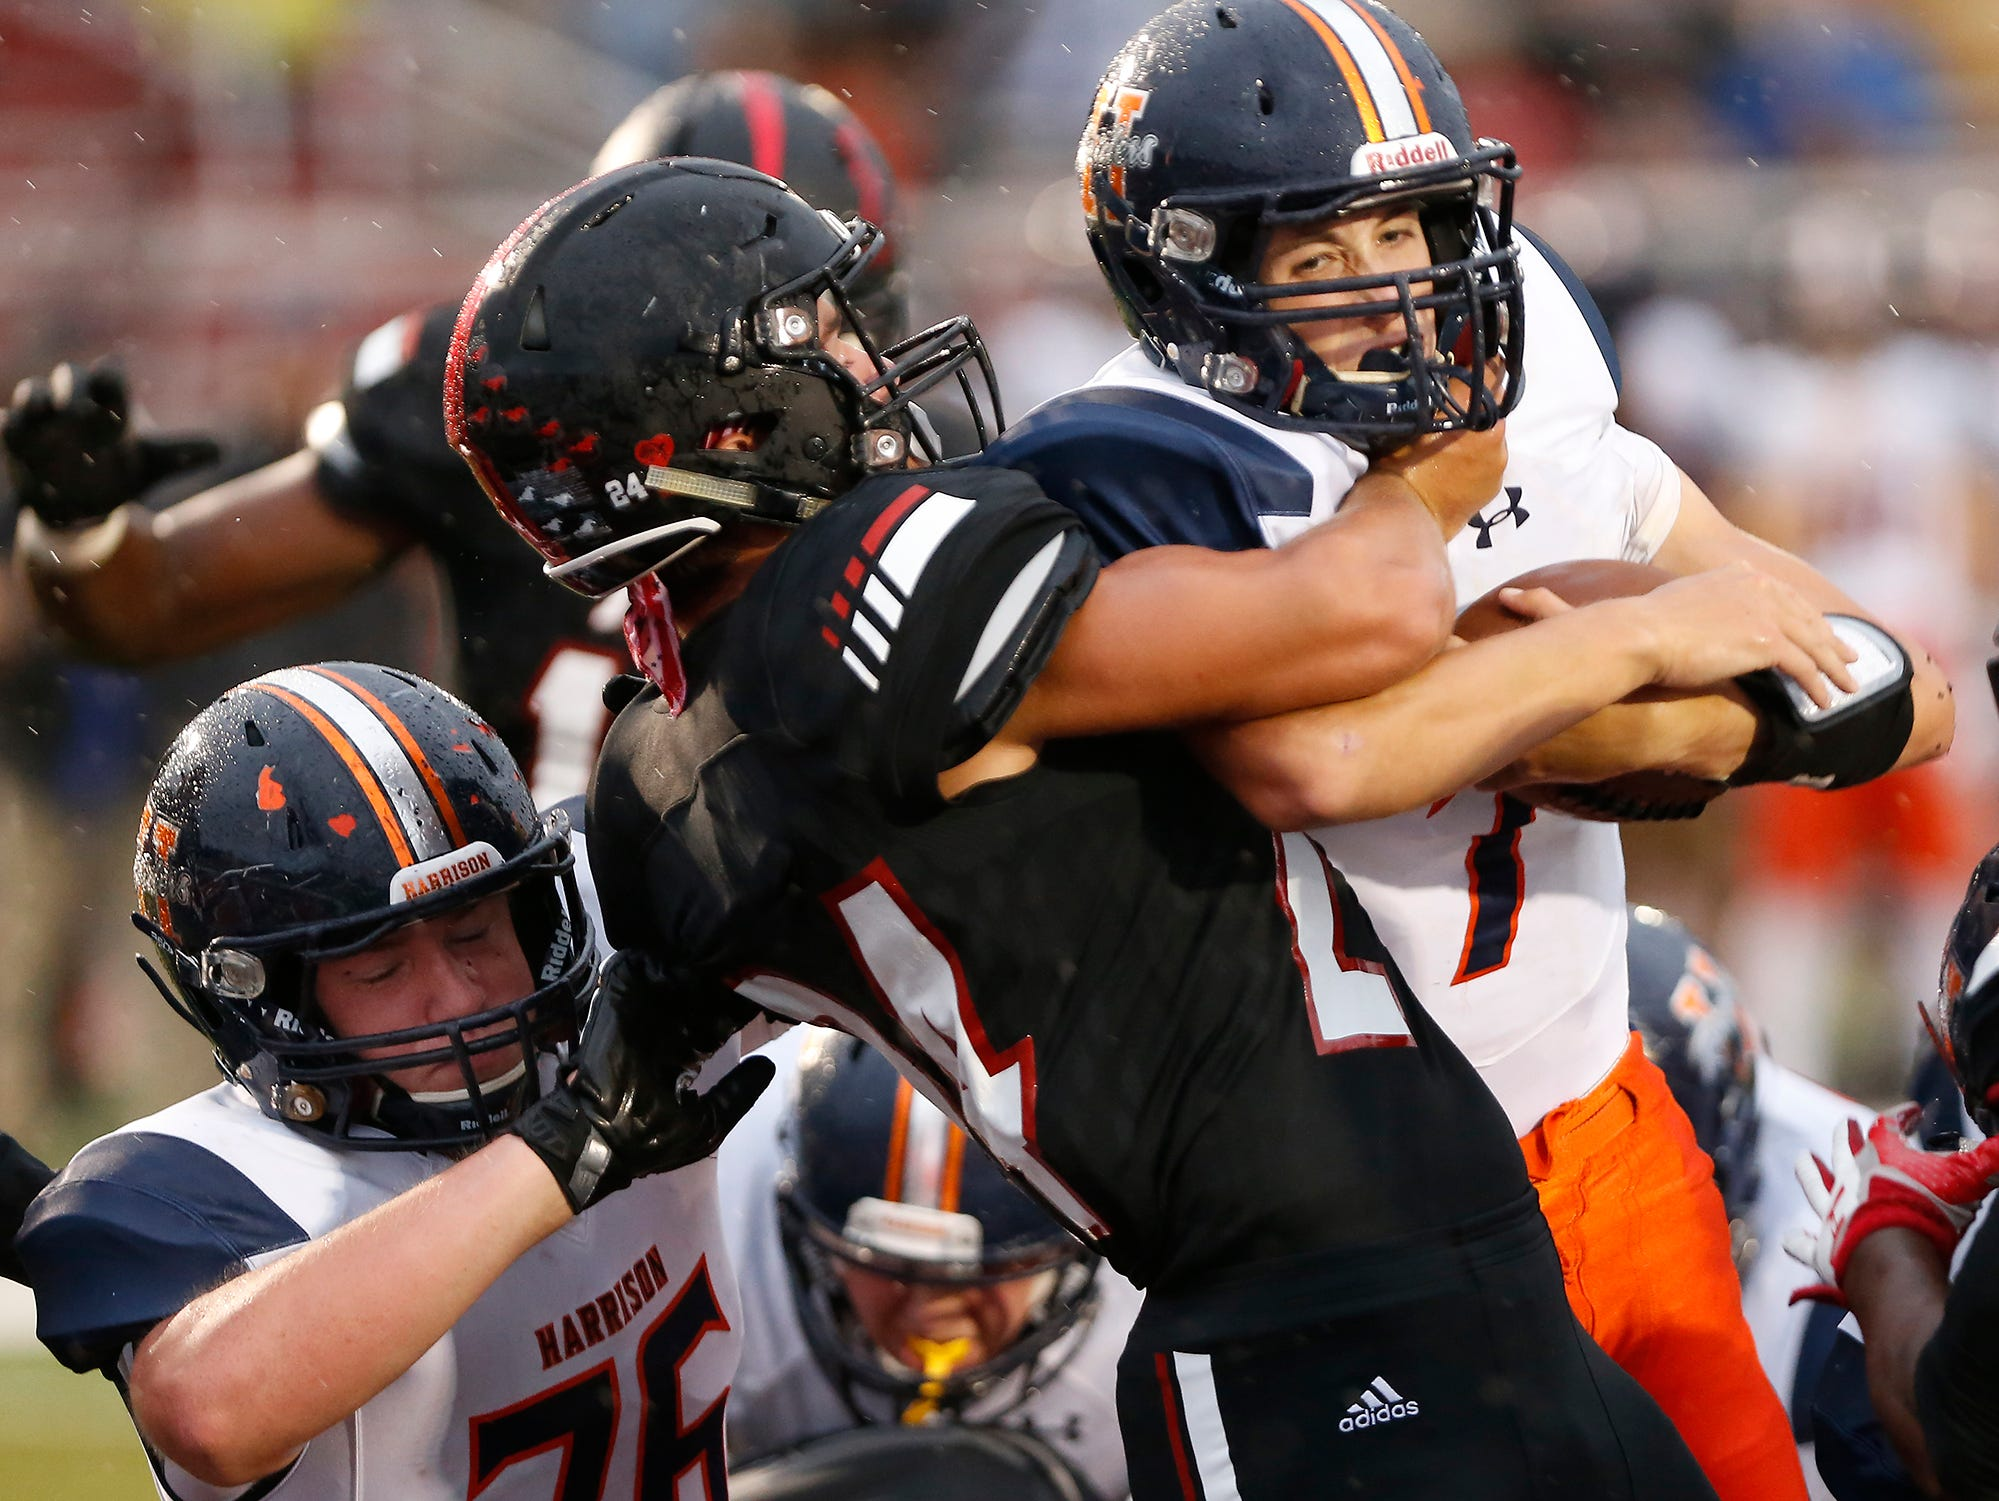 Harrison quarterback Andrew Jensen, right, muscles his way into the endzone for a Raiders touchdown at 11:55 in the second quarter against Lafayette Jeff Friday, September 7, 2018, at Scheumann Stadium. Jeff defeated Harrison 31-14.